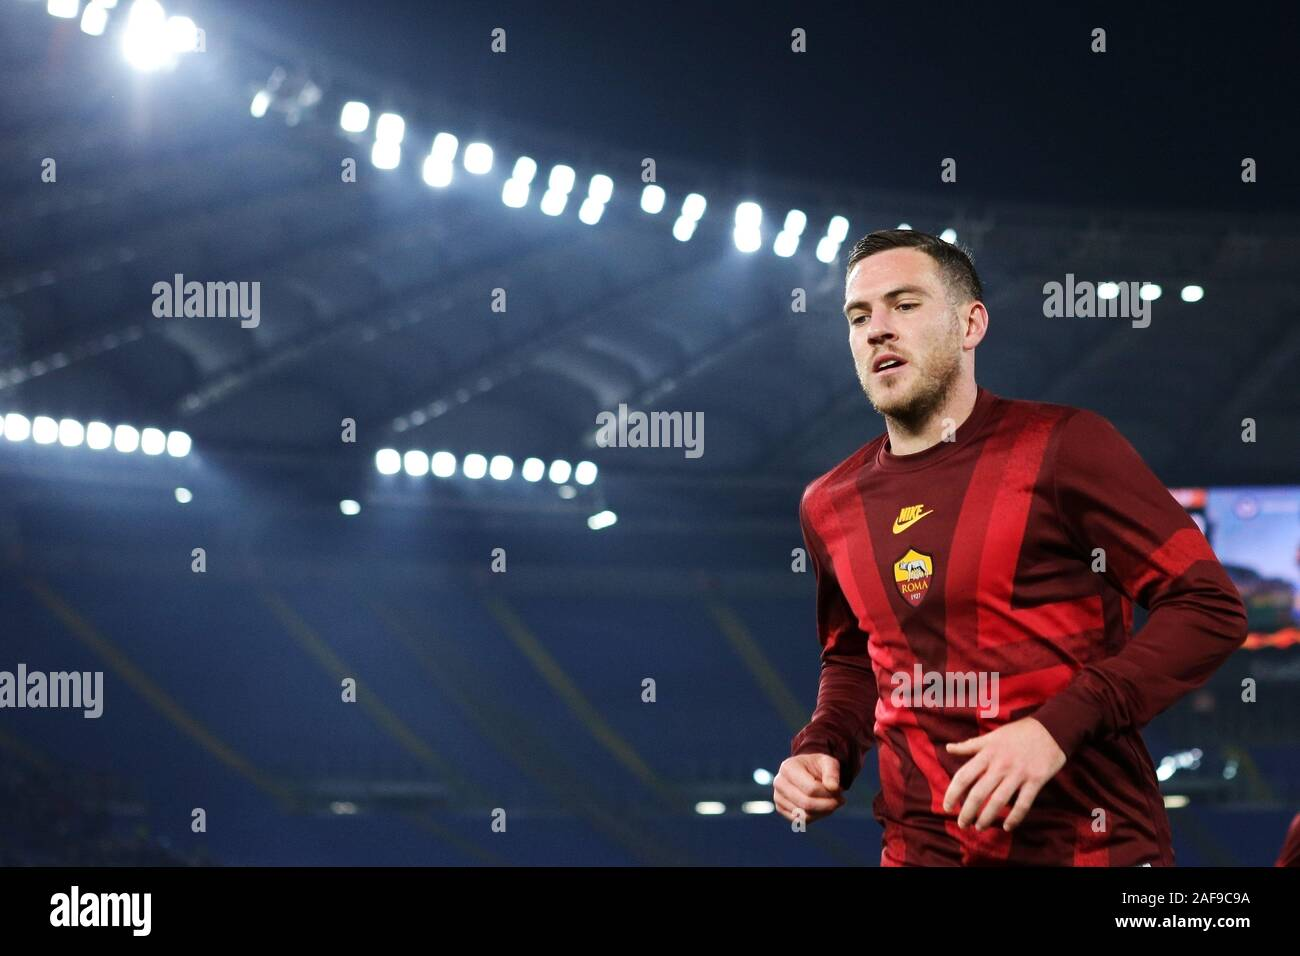 Jordan Veretout of Roma at the end of the warm up before the UEFA Europa League, Group J football match between AS Roma and Wolfsberg AC on December 12, 2019 at Stadio Olimpico in Rome, Italy - Photo Federico Proietti/ESPA-Images Stock Photo